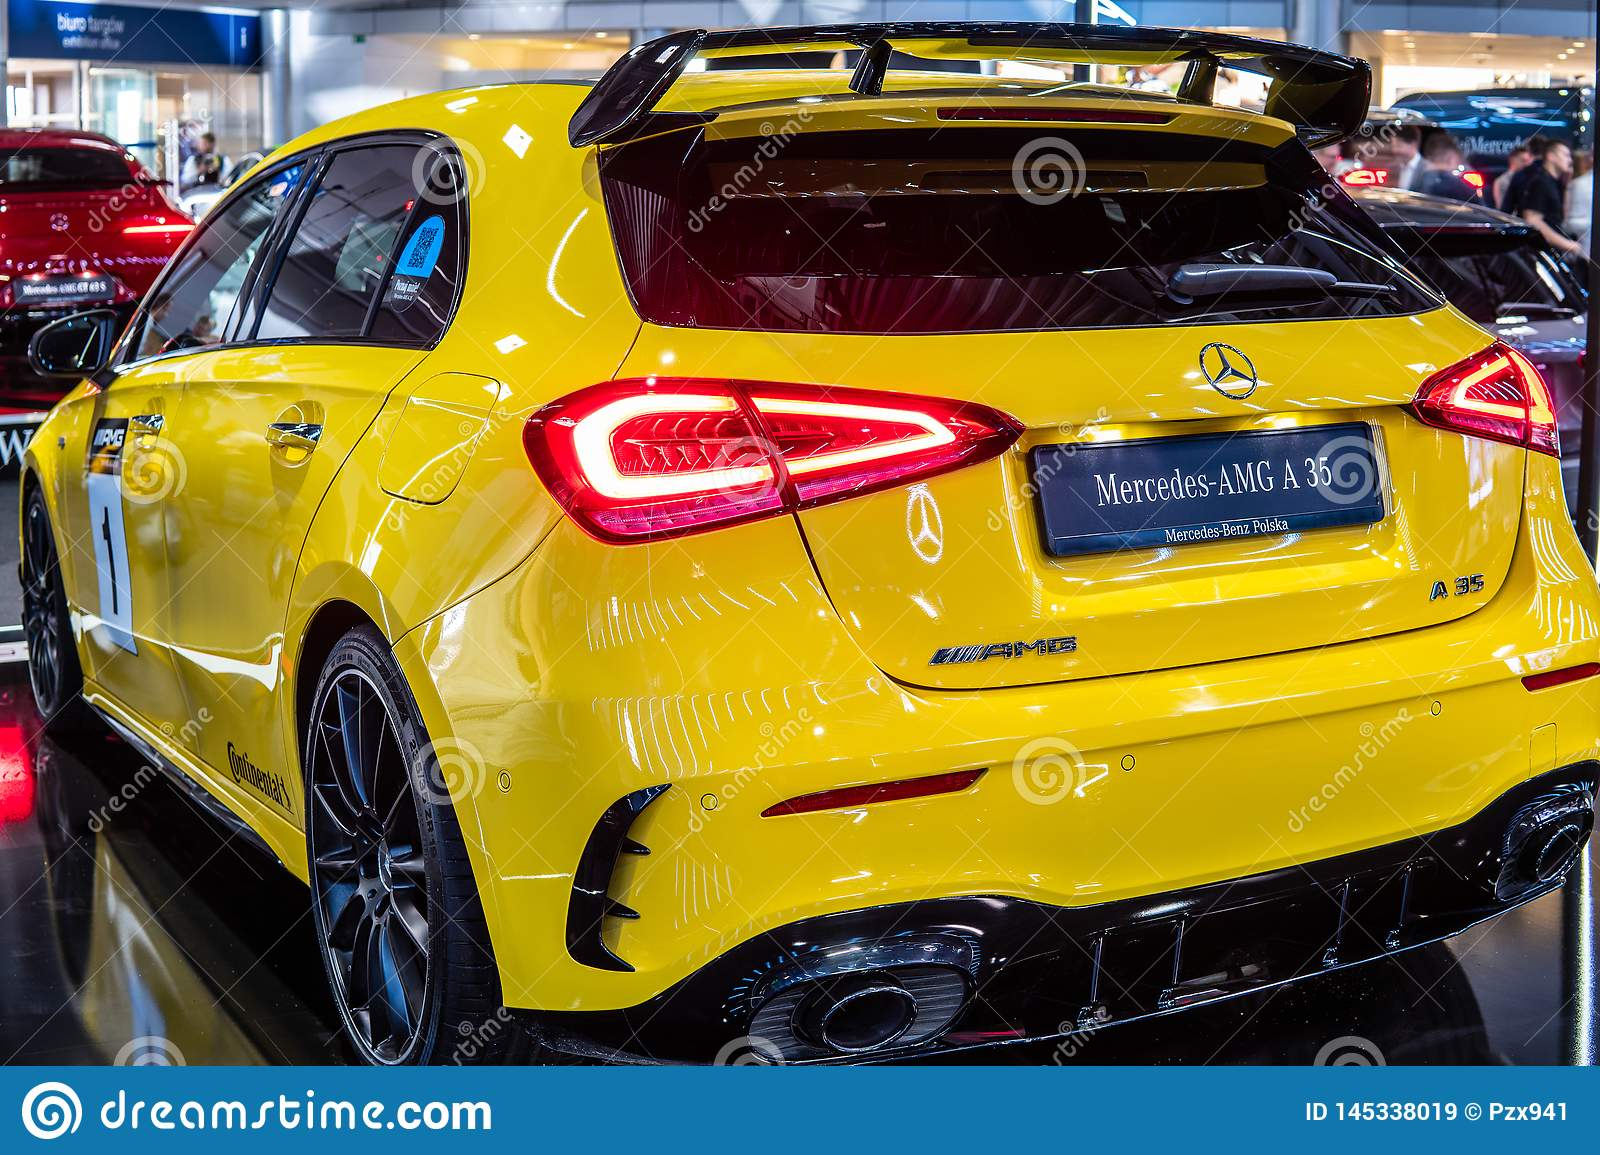 Mercedes-AMG A 35 4MATIC+ W177 A-Class car produced by Mercedes Benz